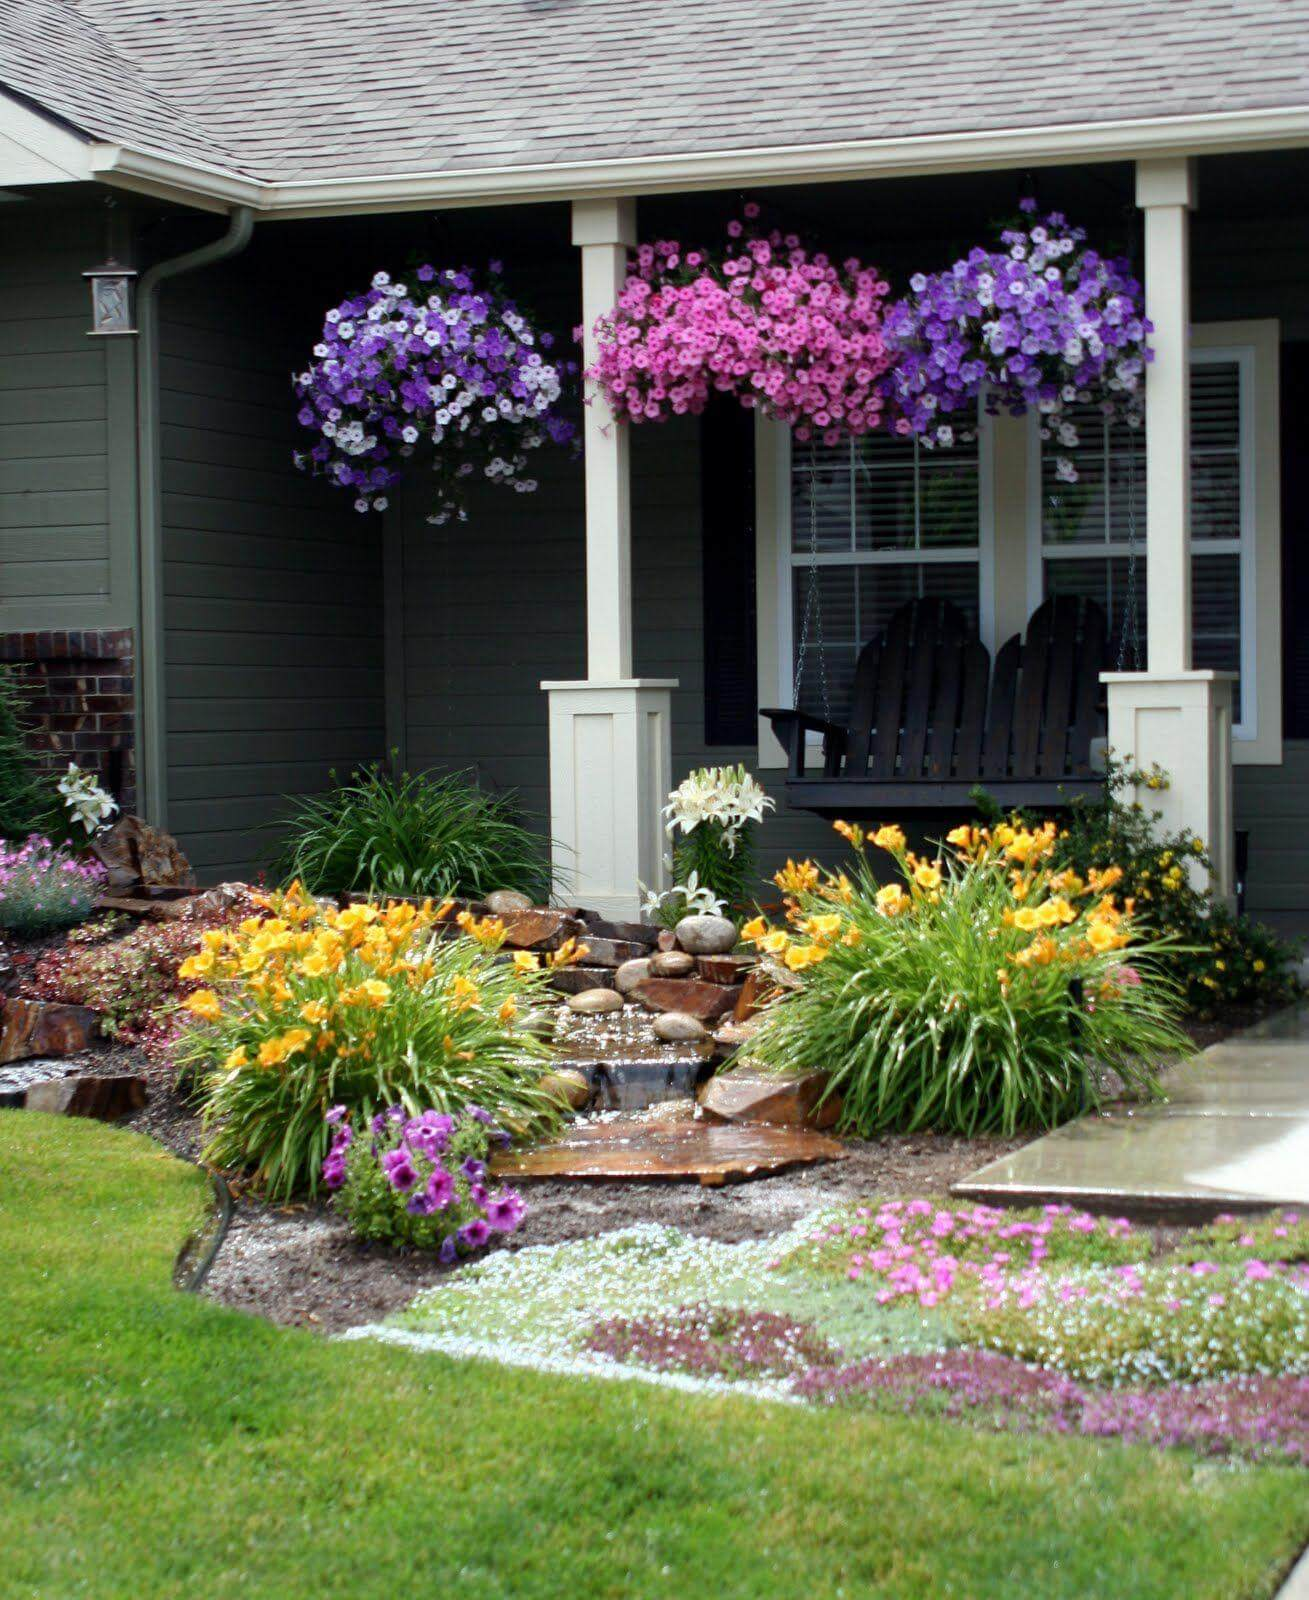 Home And Garden Design Ideas: 50 Best Front Yard Landscaping Ideas And Garden Designs